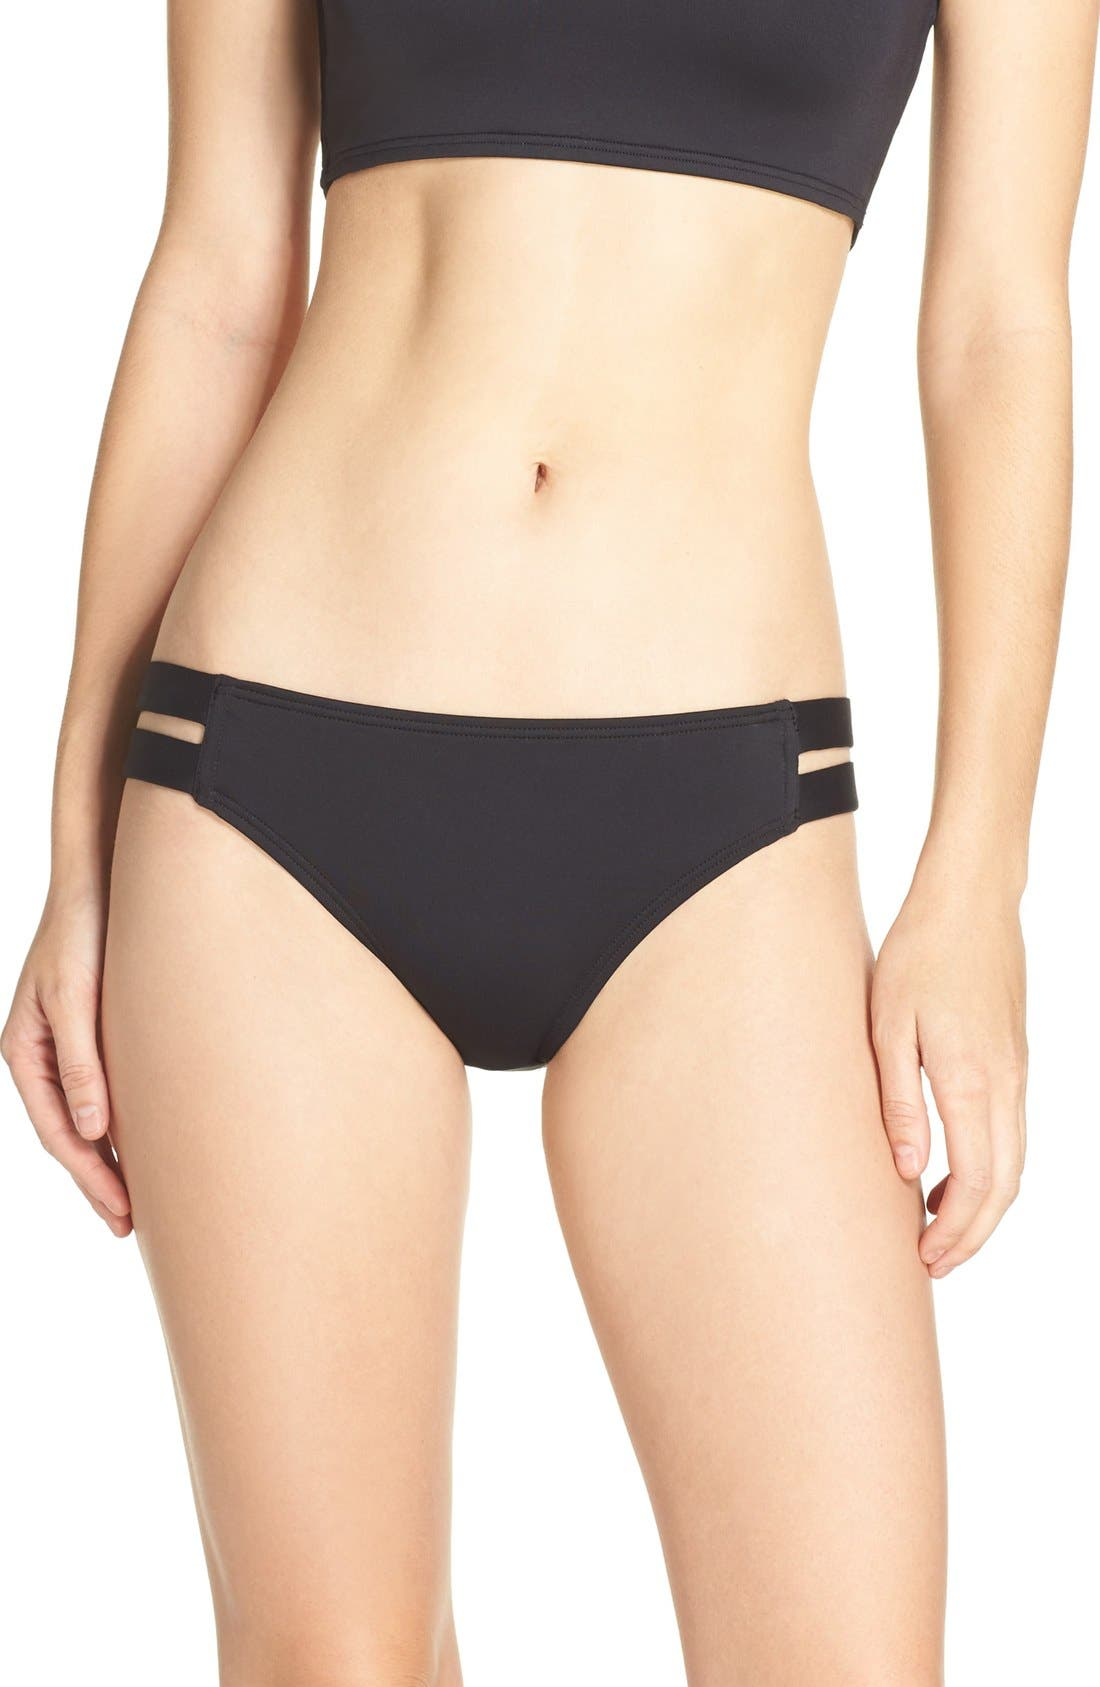 Alternate Image 1 Selected - Vince Camuto Strap Side Bikini Bottoms